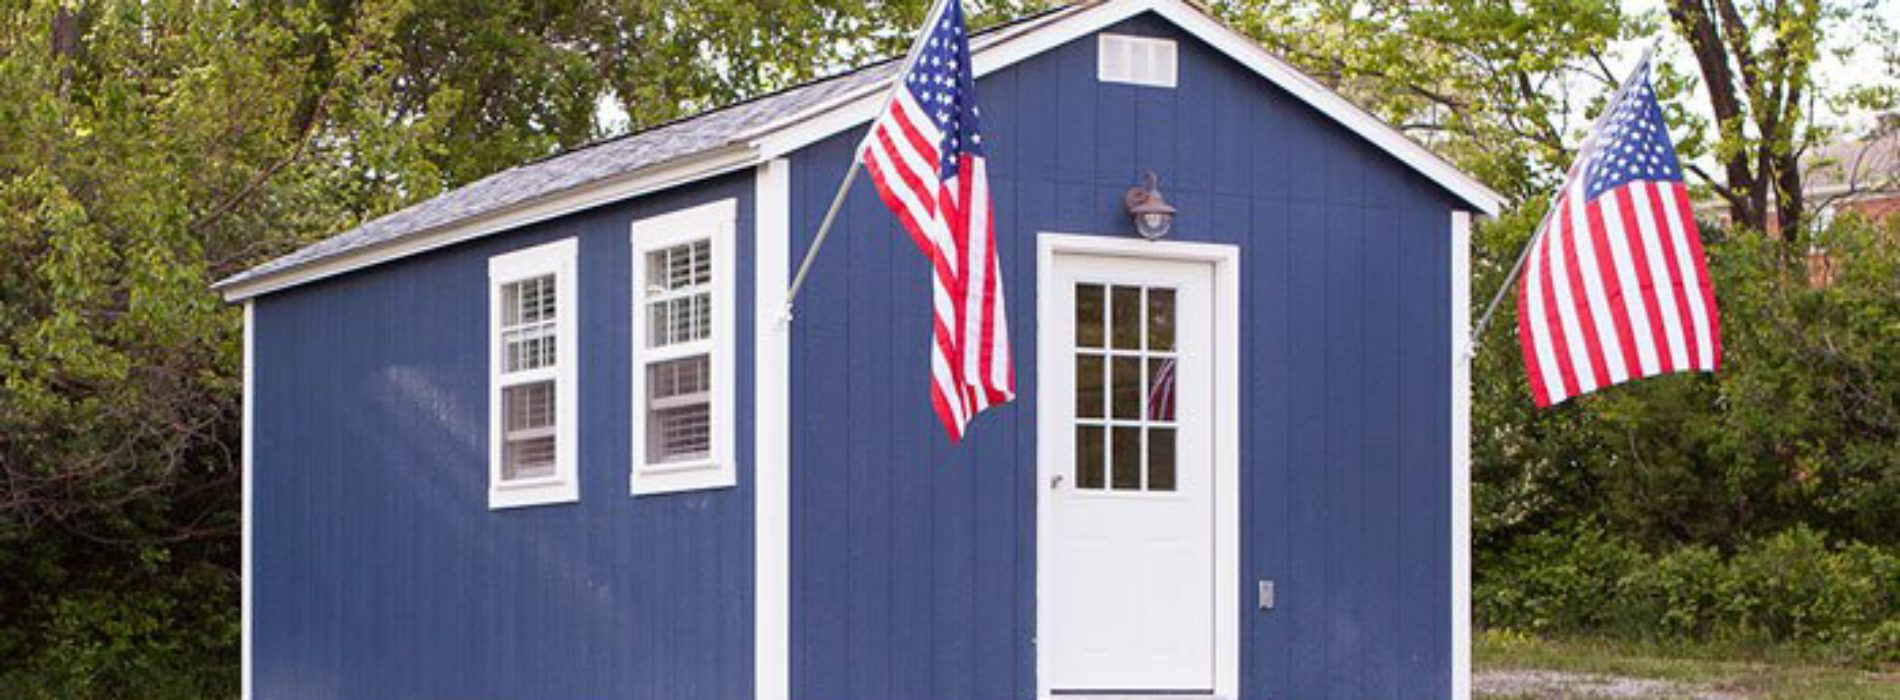 Episode #33: Helping homeless veterans, one tiny house at a time